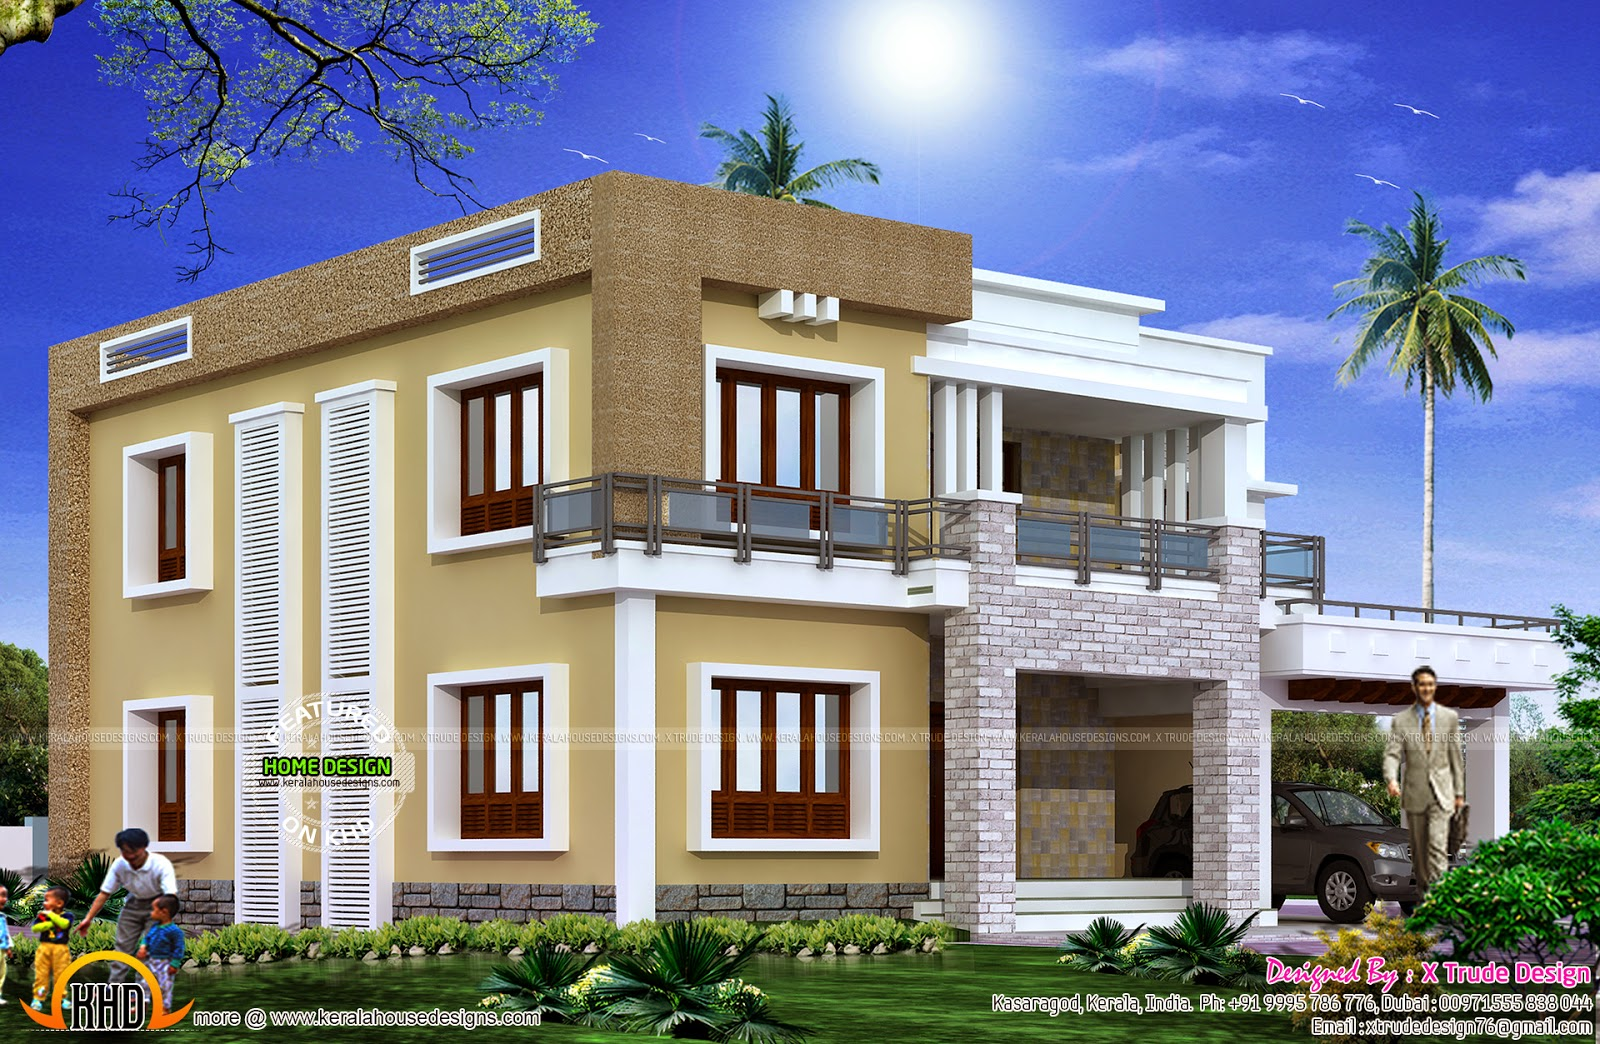 Design for houses unique villa designs kerala home architecture house plans bedroom pinterest contemporary and exterior color also rh